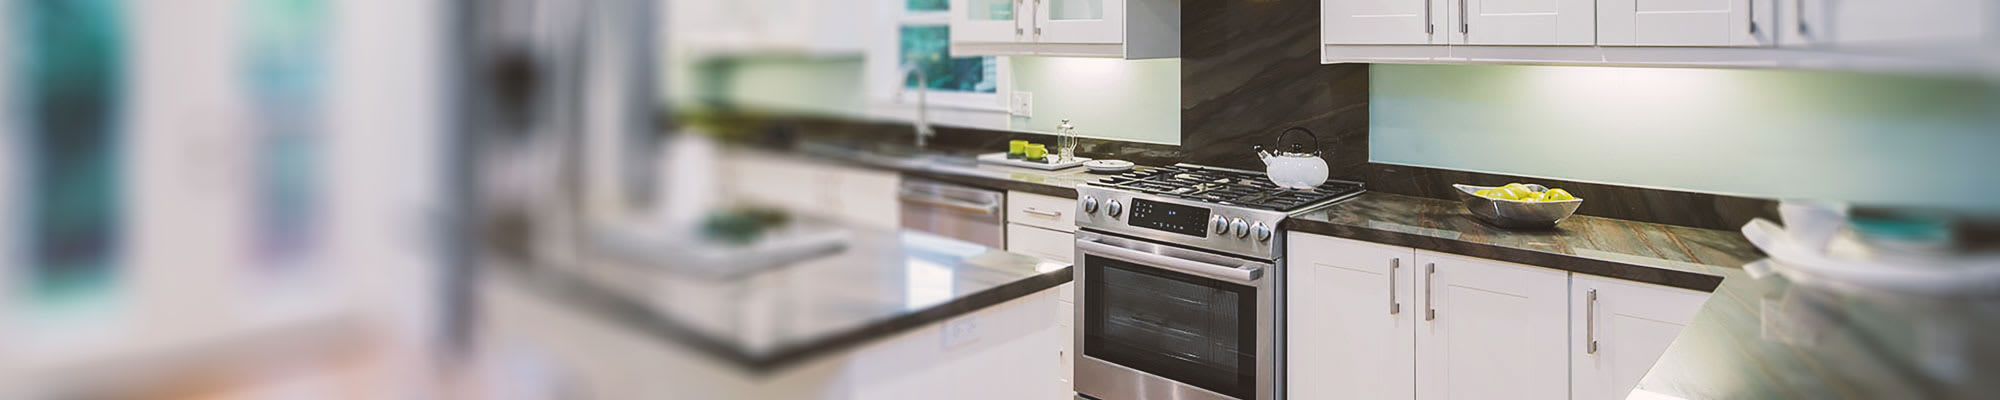 Home Energy Guide: Energy Efficient Appliances